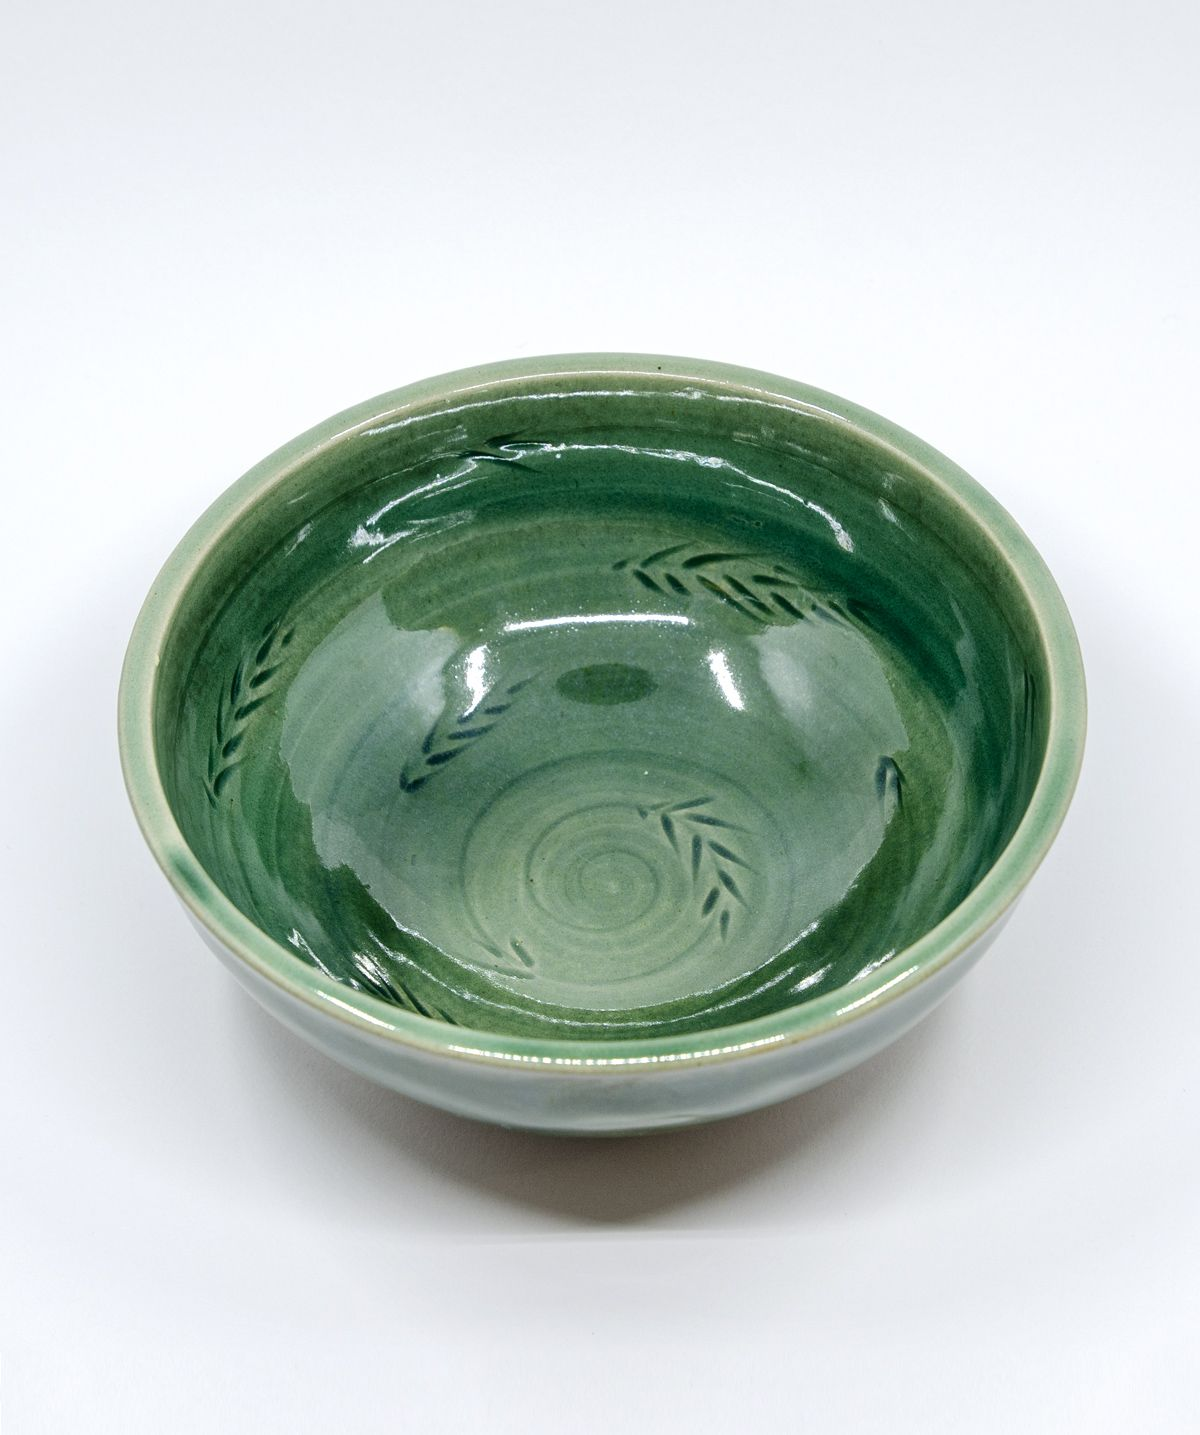 The medium cermic bowl is carved with a spiral floral motif, glazed outside and inside with a green shiny transparent glaze, a stone ware bottom. Pottery handmade art by #gosha_ceramics // #pottery  #fruitbowl #poterie #clay #claylove #handmade #handmadeceramics #ceramics #ceramiclove #céramique #pottersofinstagram #ilovepottery #bowl #tableware #wheelthrown #wheelthrowing #ceramicart #funcionalpottery